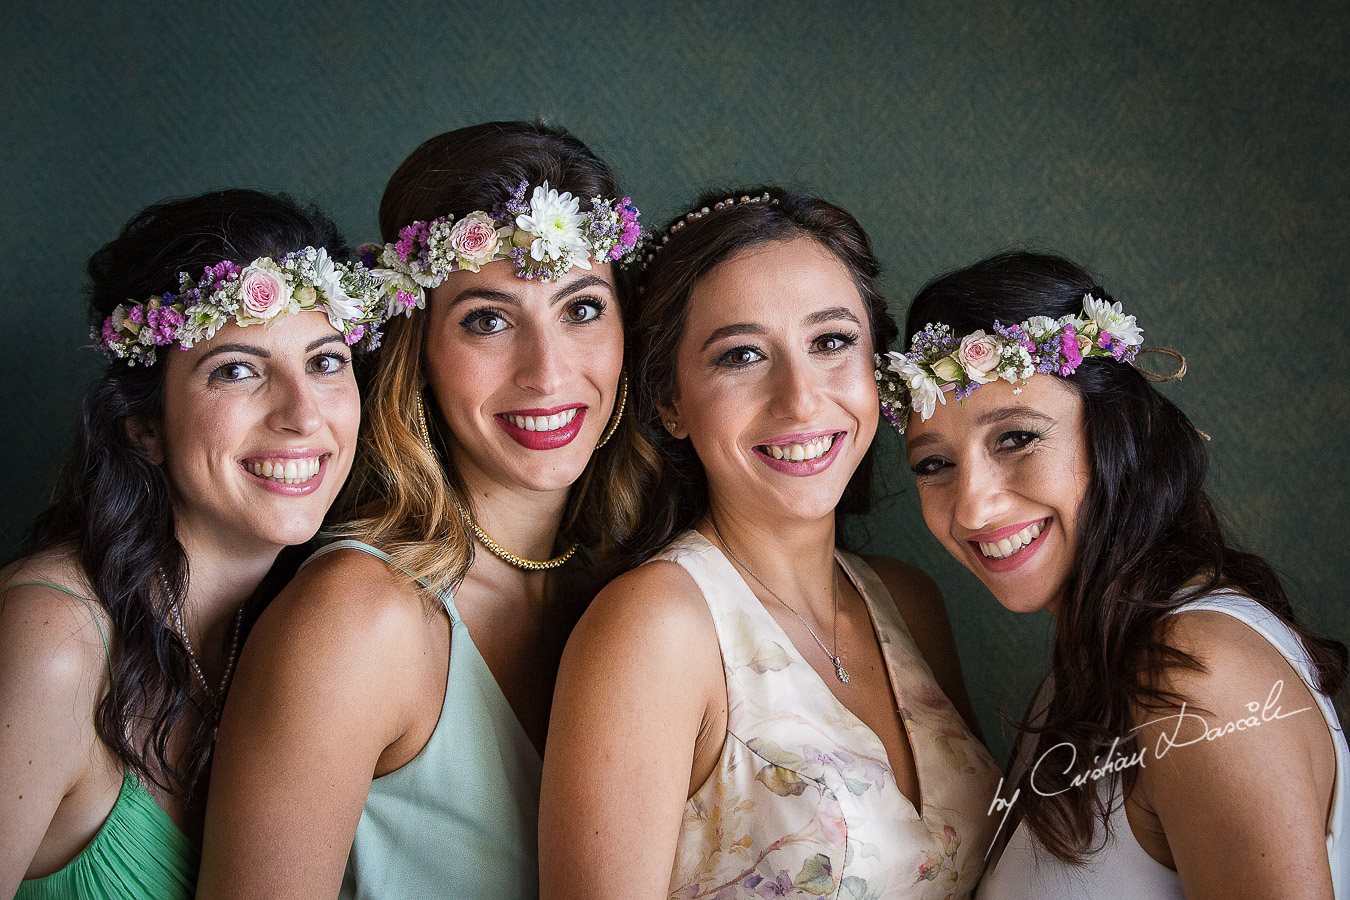 The Bride and her bridesmaids posing during getting ready as part of an Exclusive Wedding photography at Grand Resort Limassol, captured by Cyprus Wedding Photographer Cristian Dascalu.